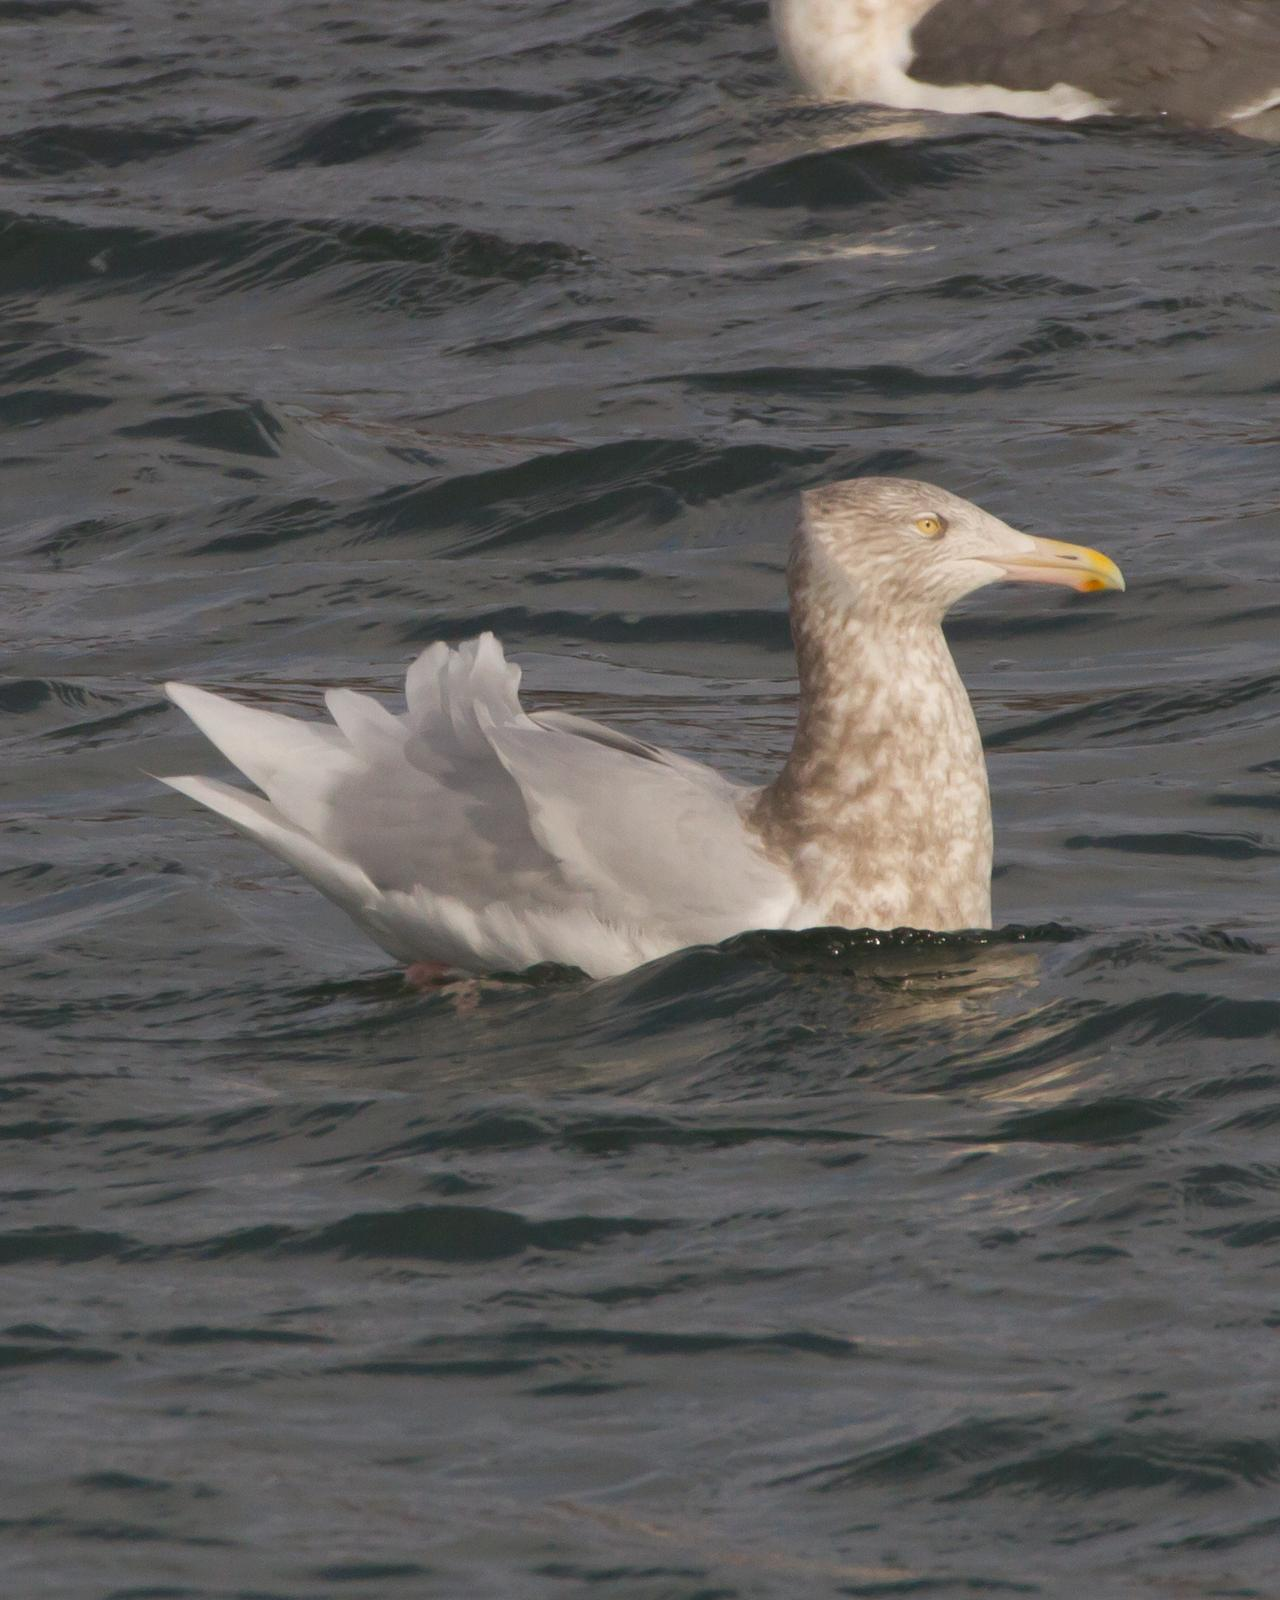 Glaucous Gull Photo by Kasia  Ganderska Someya